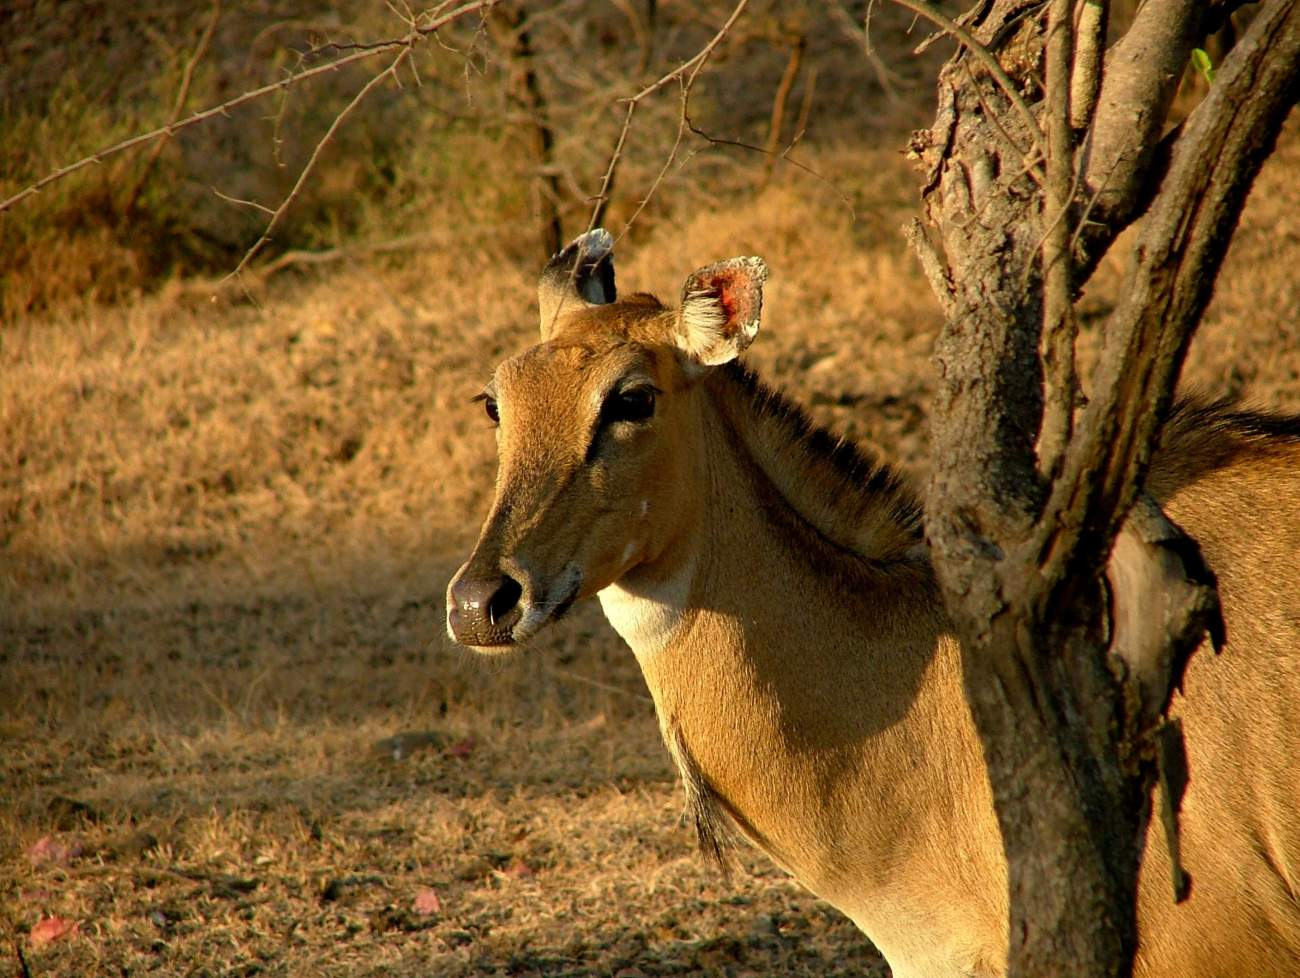 Blackbuck National Park